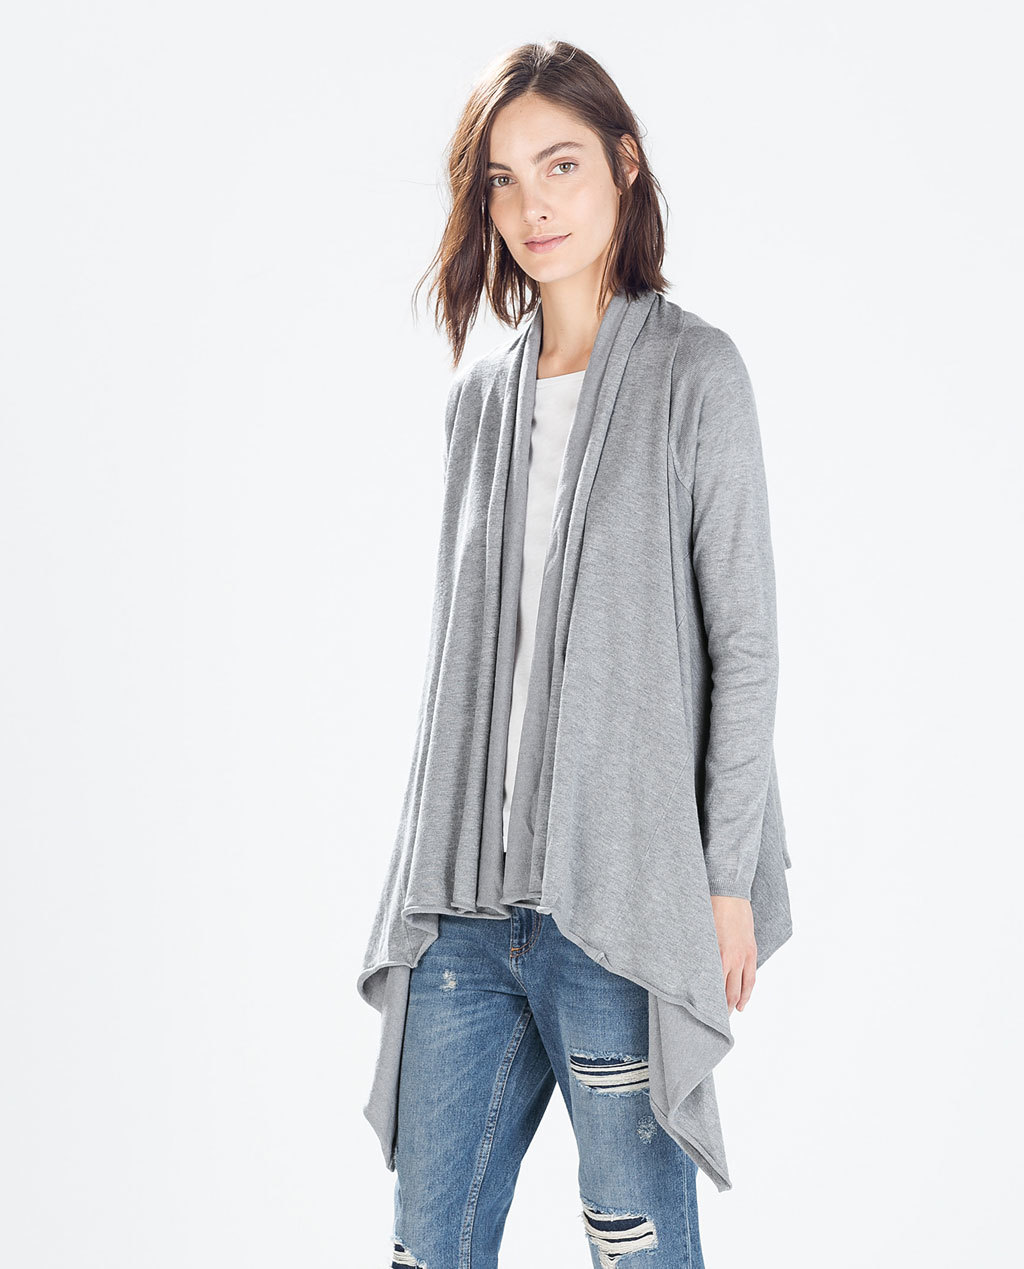 Jacket With Pointed Front - pattern: plain; collar: shawl/waterfall; fit: loose; predominant colour: light grey; occasions: casual, creative work; length: standard; back detail: longer hem at back than at front; sleeve length: long sleeve; sleeve style: standard; collar break: low/open; pattern type: fabric; texture group: jersey - stretchy/drapey; fibres: viscose/rayon - mix; style: fluid/kimono; season: s/s 2015